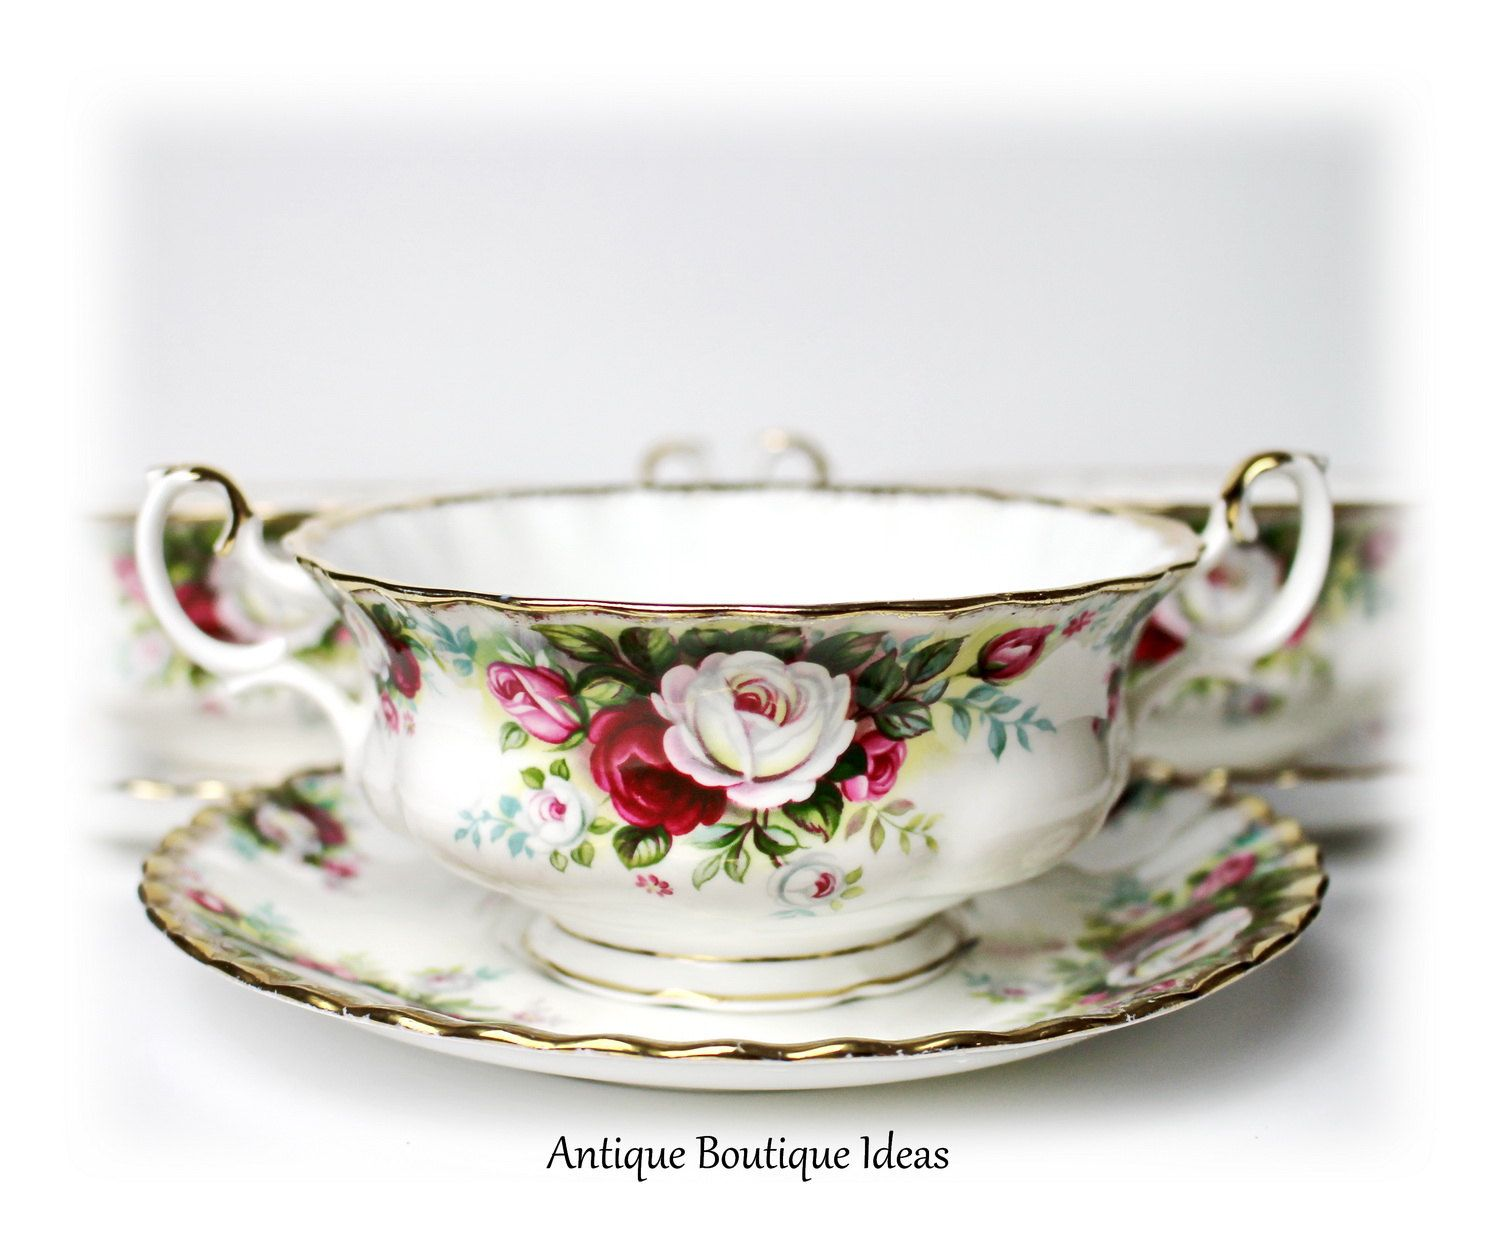 Lovely Vintage Soup Cup Bowl Royal Albert English Bone China Celebration Floral Decor Shabby Chic Roses Serving Dinnerware by AntiqueBoutiqueIdeas on Etsy